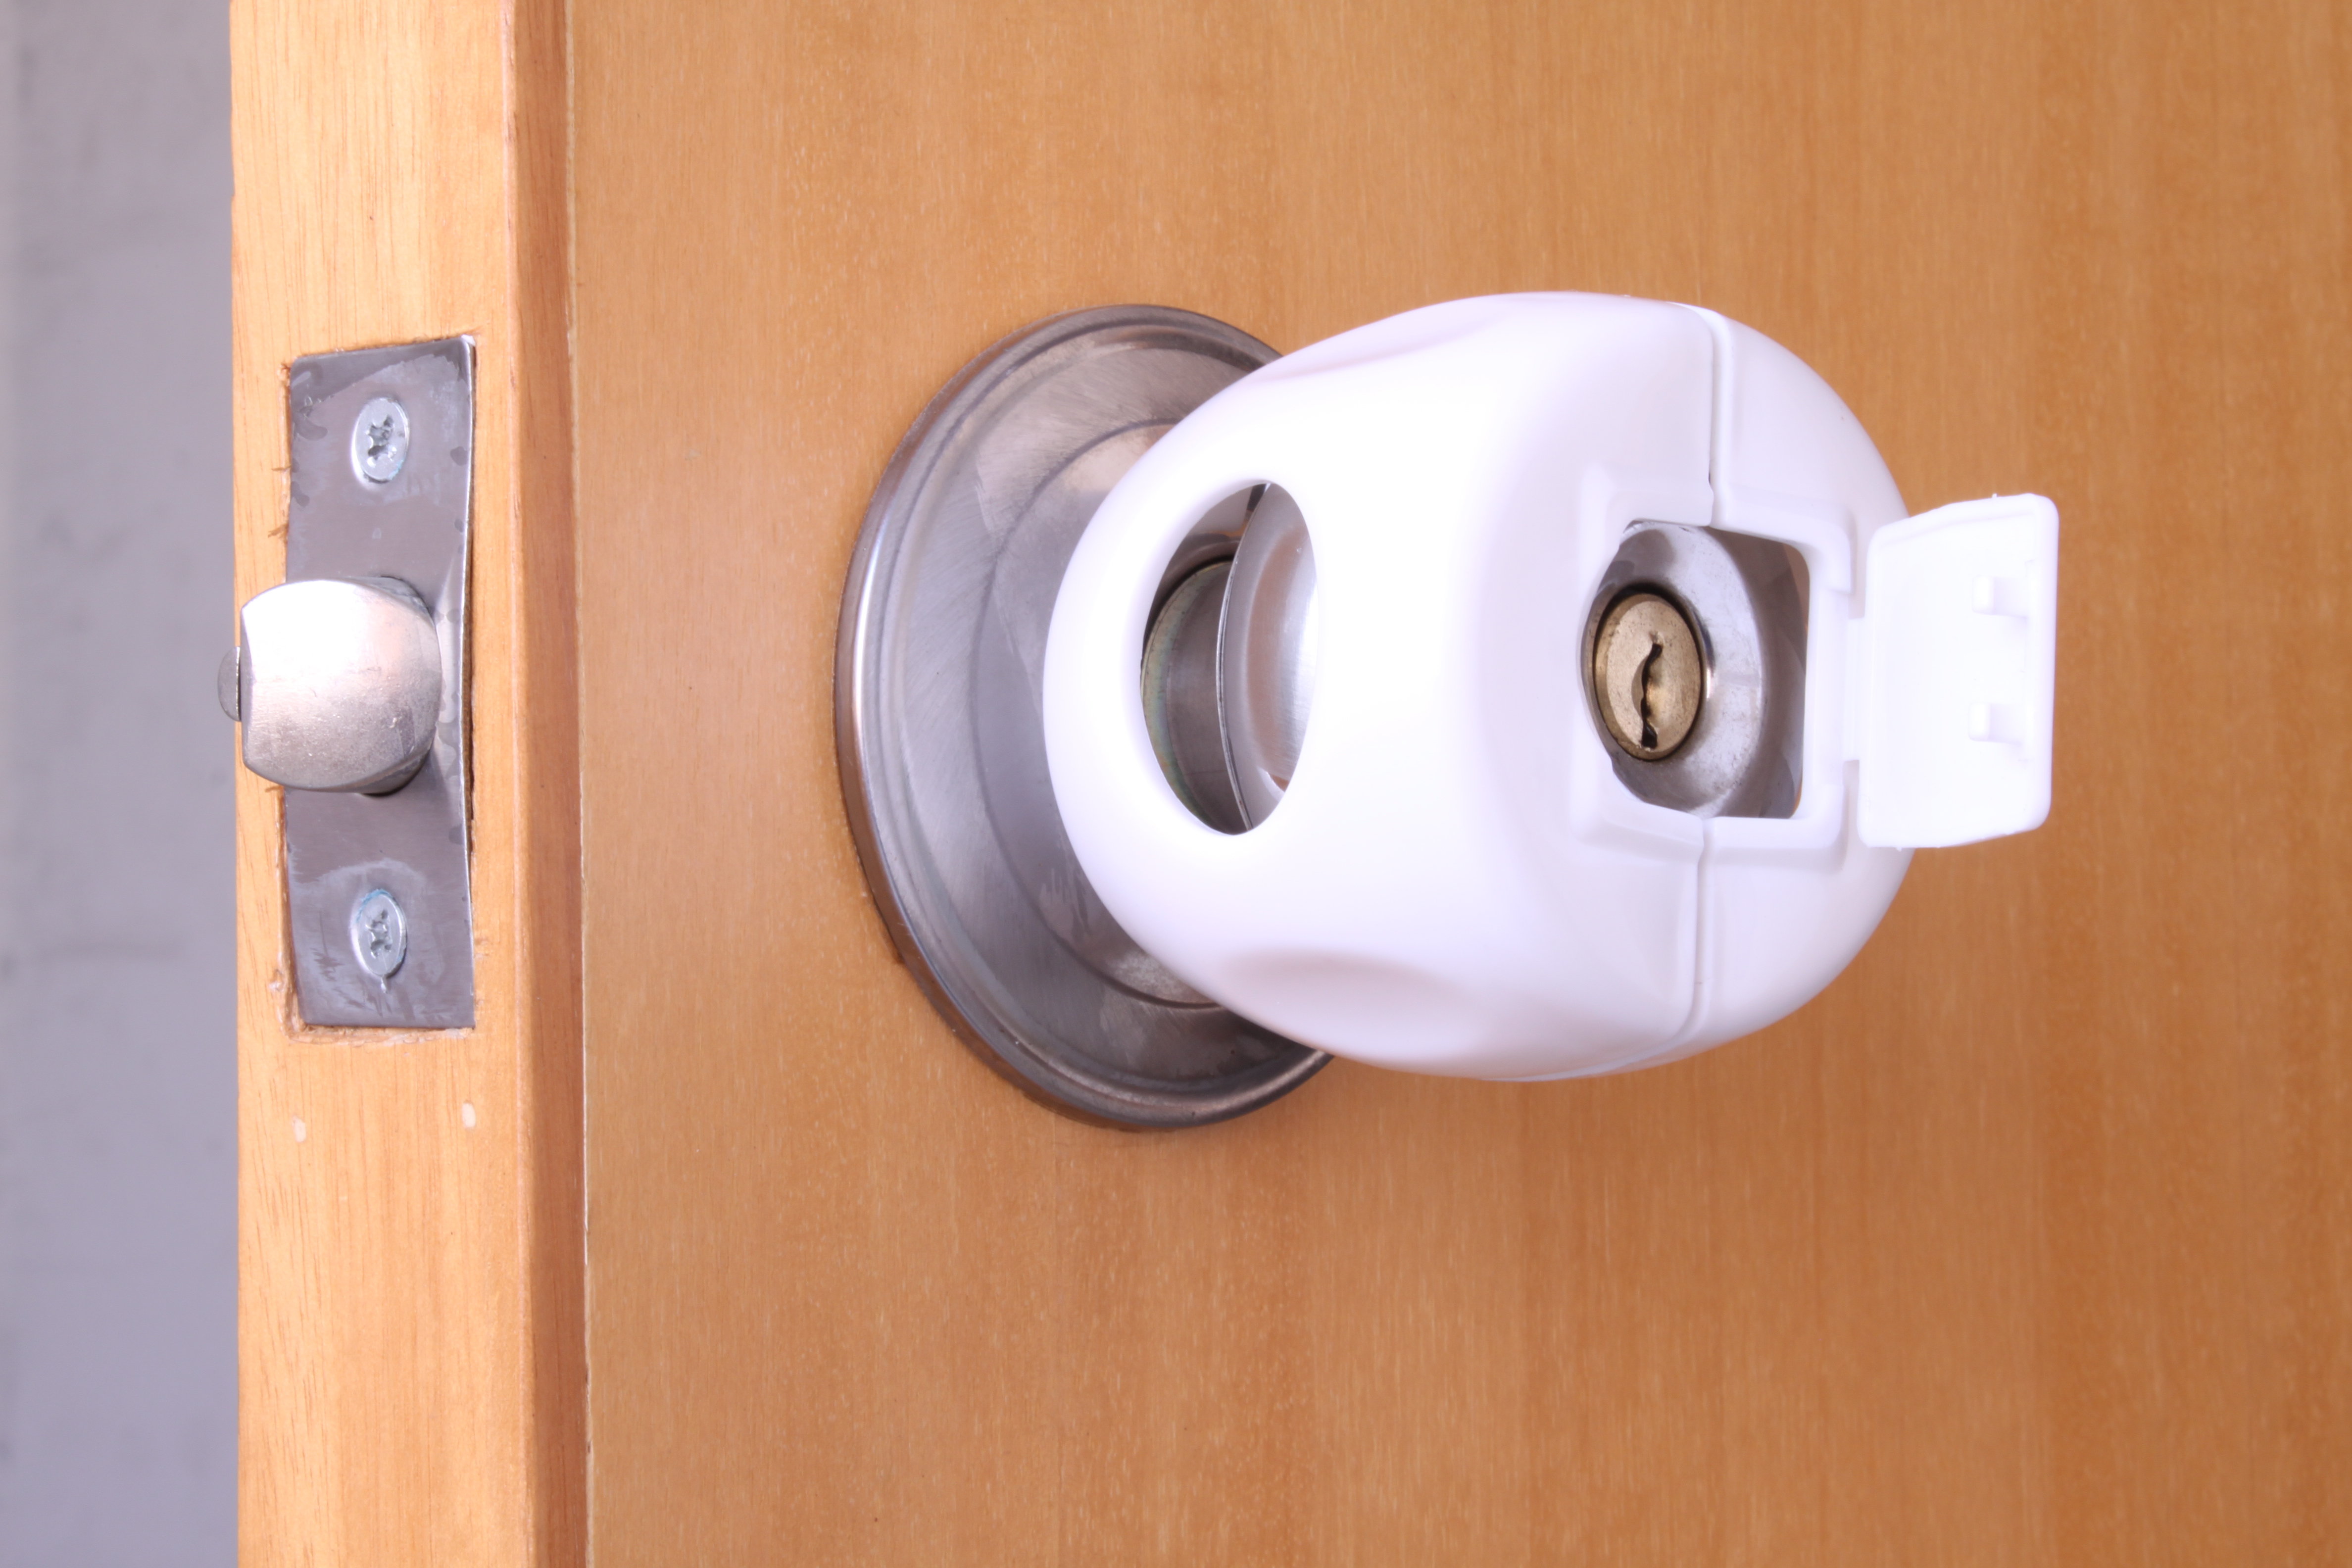 child safety door knob covers photo - 15